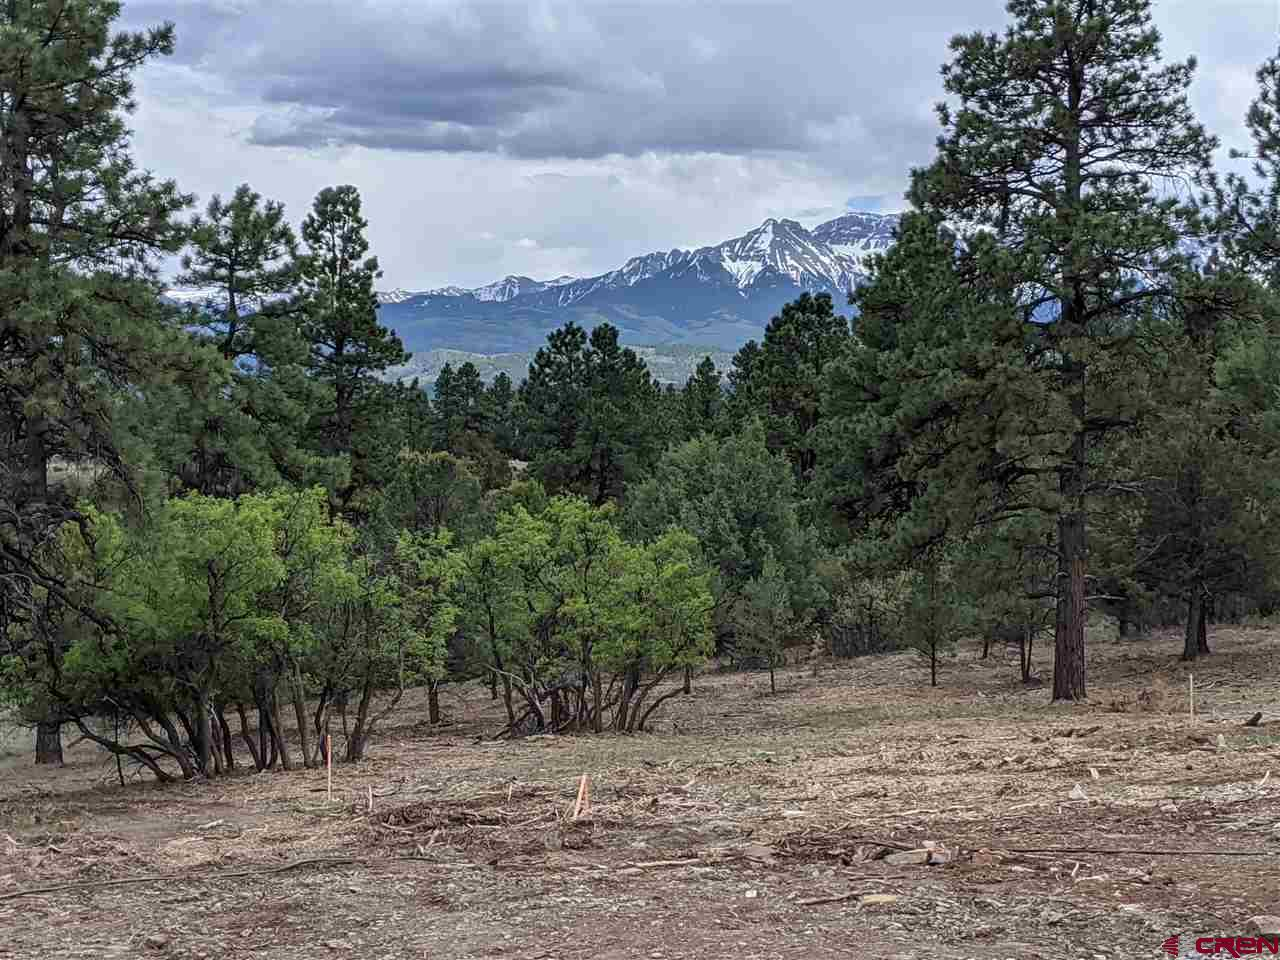 * One Lot remaining with great views! * Four house lans to choose from * Square Footage begins at approx. 2200 sq.ft and up * Pricing begins at $519,900 and up * Call for specific details   Just what you have been waiting for! Top quality construction in the Divide Ranch Golf Community in Log Hill, Near Ridgway Colorado. There are 4 house plans to choose from, each with different pricing and square footage.  There is an option for walk out basement instead of two story.   The Homes are finished with Granite or Quartz counter tops throughout, Partial Carpet and Vinyl Plank Flooring and Tile.  Stainless appliances including Refrigerator, Range/oven, Microwave, disposal and Dishwasher.  Exterior is Stucco/Stone.  There are a total of four units in this Planned Unit Development in The Divide Golf Community.  They have shared driveways between 2 homes.  Each Home has its own septic and it is Dallas Creek Water.    There are excellent Mountain views and some views of the golf course.  There is a golf Membership included with a transfer fee paid by the Buyer of $3,000 at closing.  The homes are completed within 7 months of Permit being issued.  Located is 10 min from Ridgway, 20 min to Ouray and The Hot springs, and 45 min to World class Skiing in Telluride and you can enjoy the Summer Season in alll of the same areas. Live and Play all year round living in the heart of the San Juan Mountains.